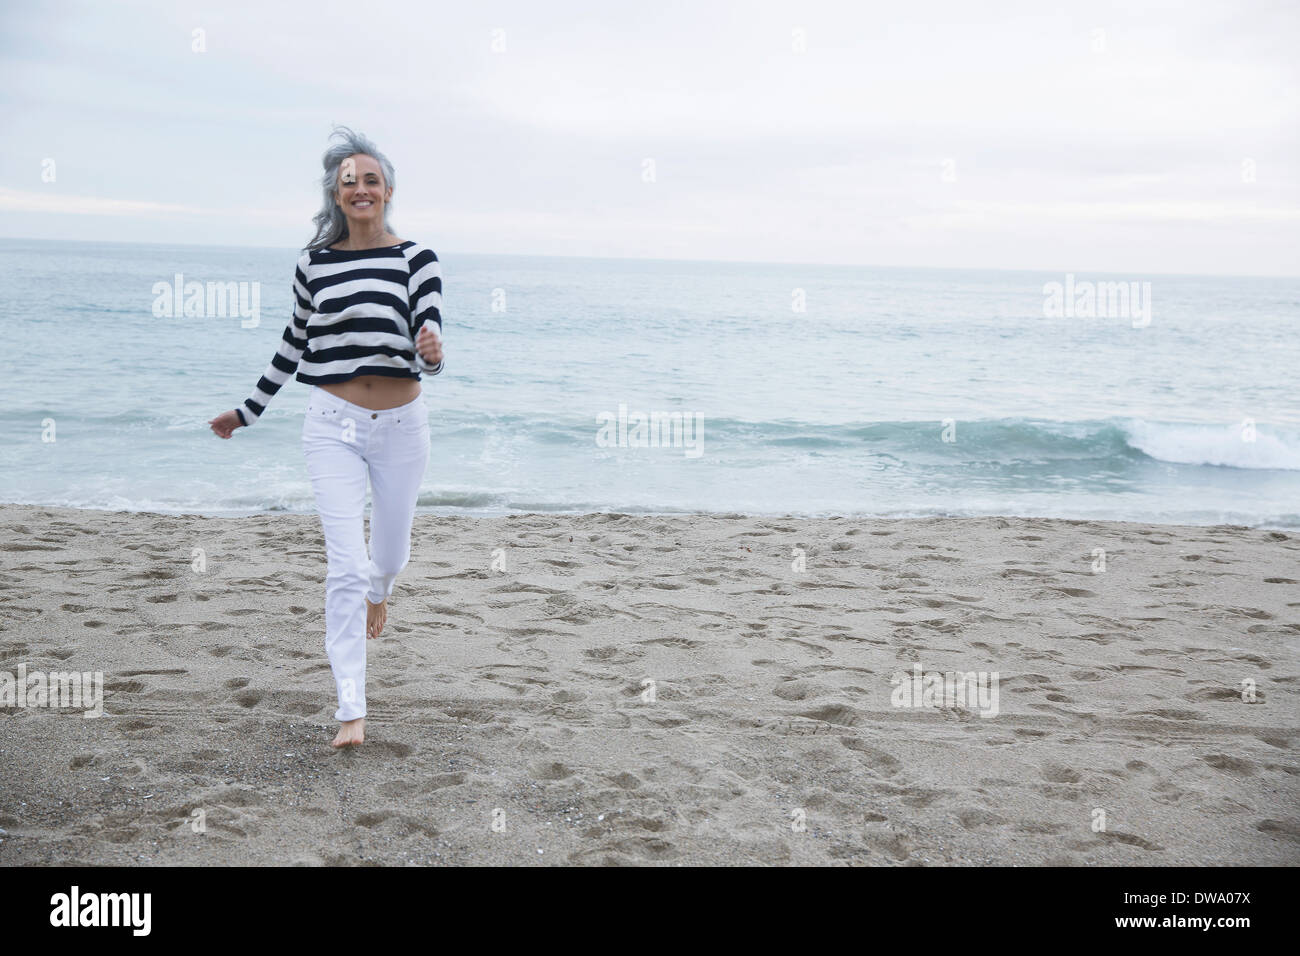 Mature woman running on beach, Los Angeles, California, USA - Stock Image